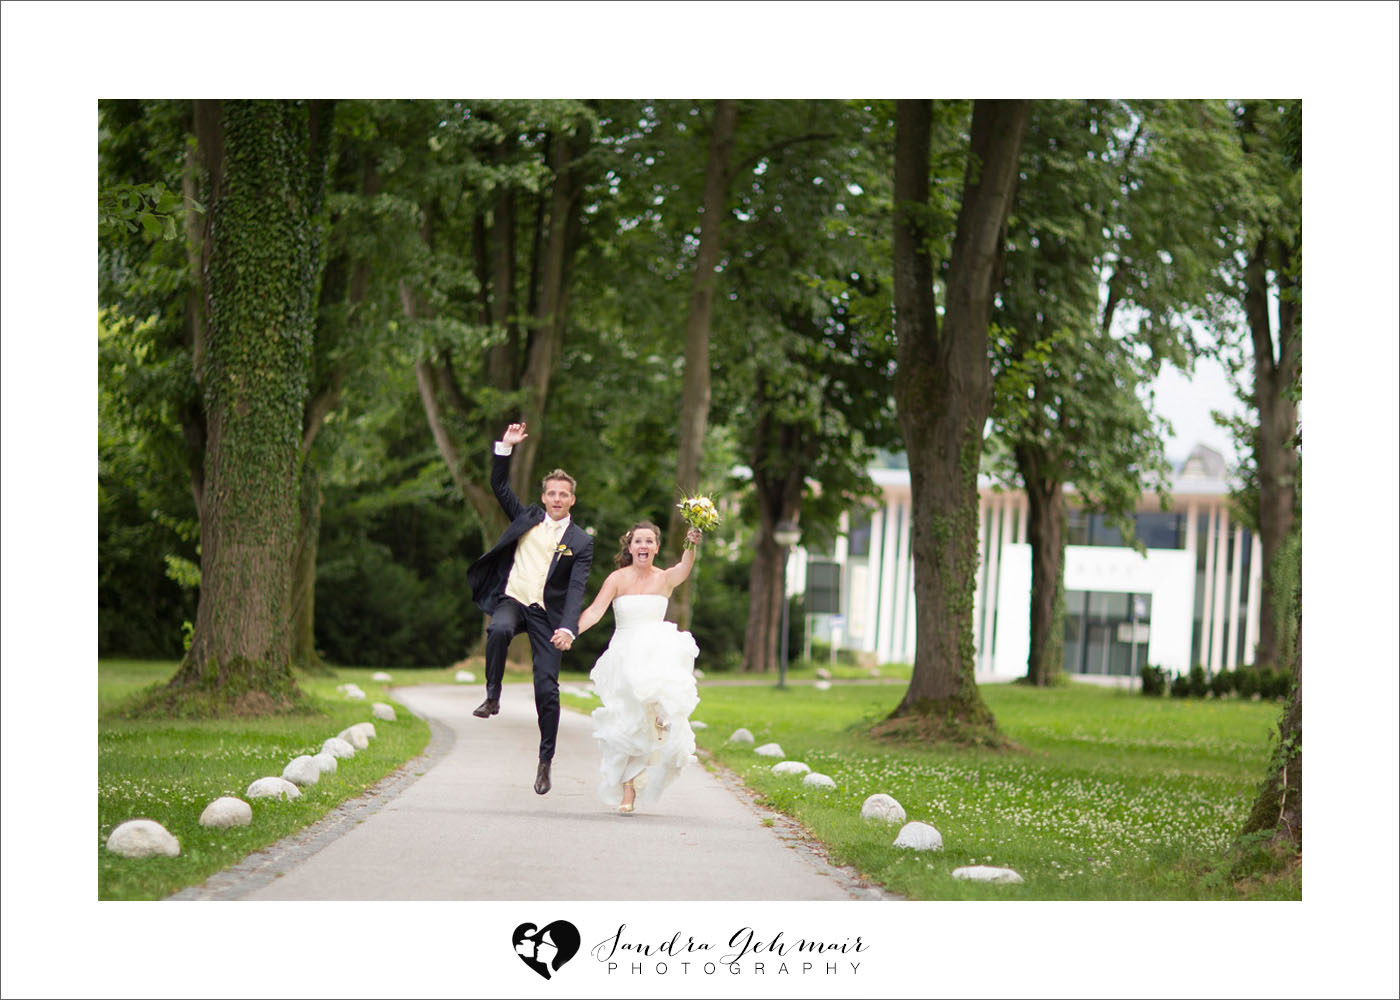 042_heiraten_am_see_spitzvilla_sandra_gehmair